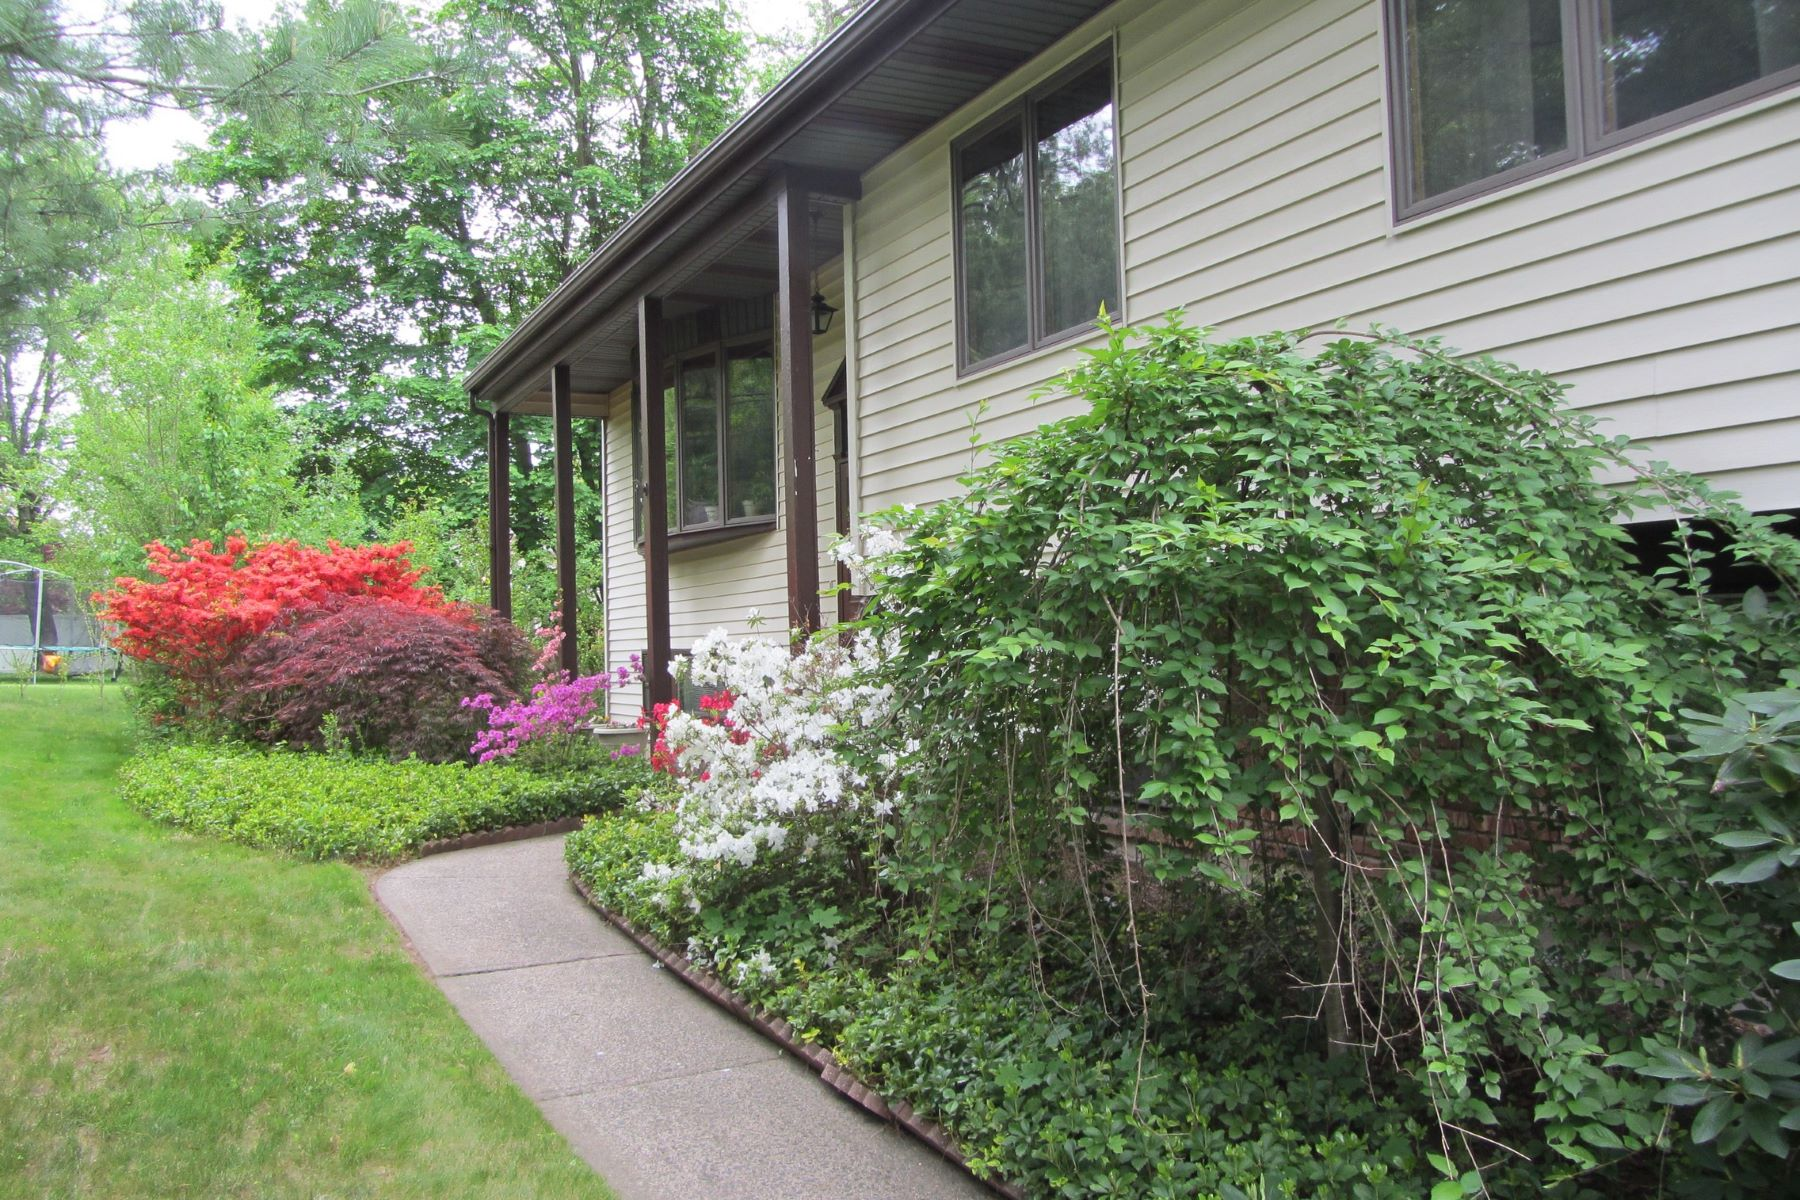 Single Family Home for Sale at Private, Picturesque Setting 439 Route 306 Wesley Hills, New York, 10952 United States